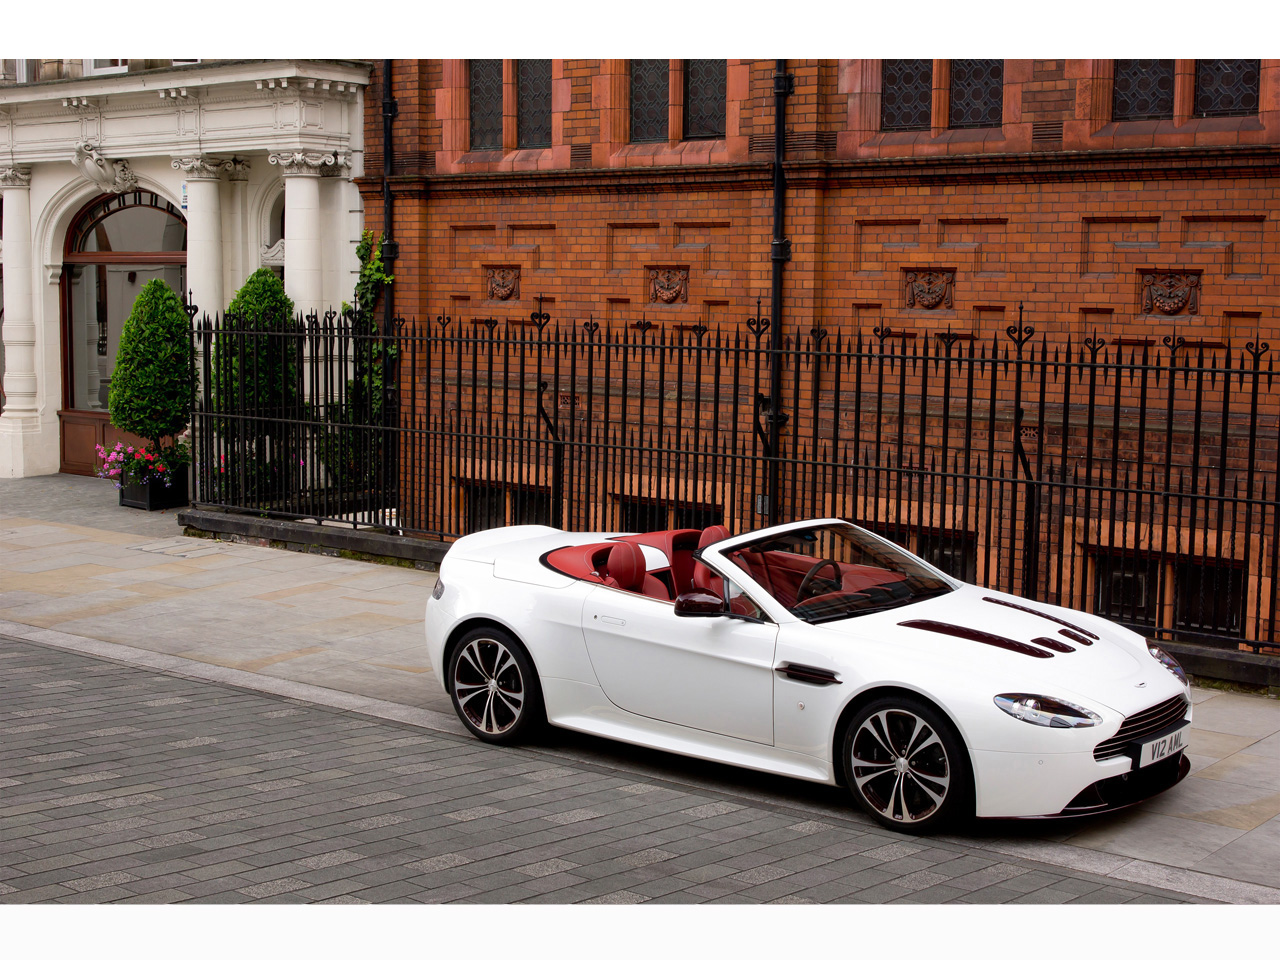 Peugeot Rcz Price In India >> 2012 Aston Martin V12 Vantage Roadster News and Information - conceptcarz.com